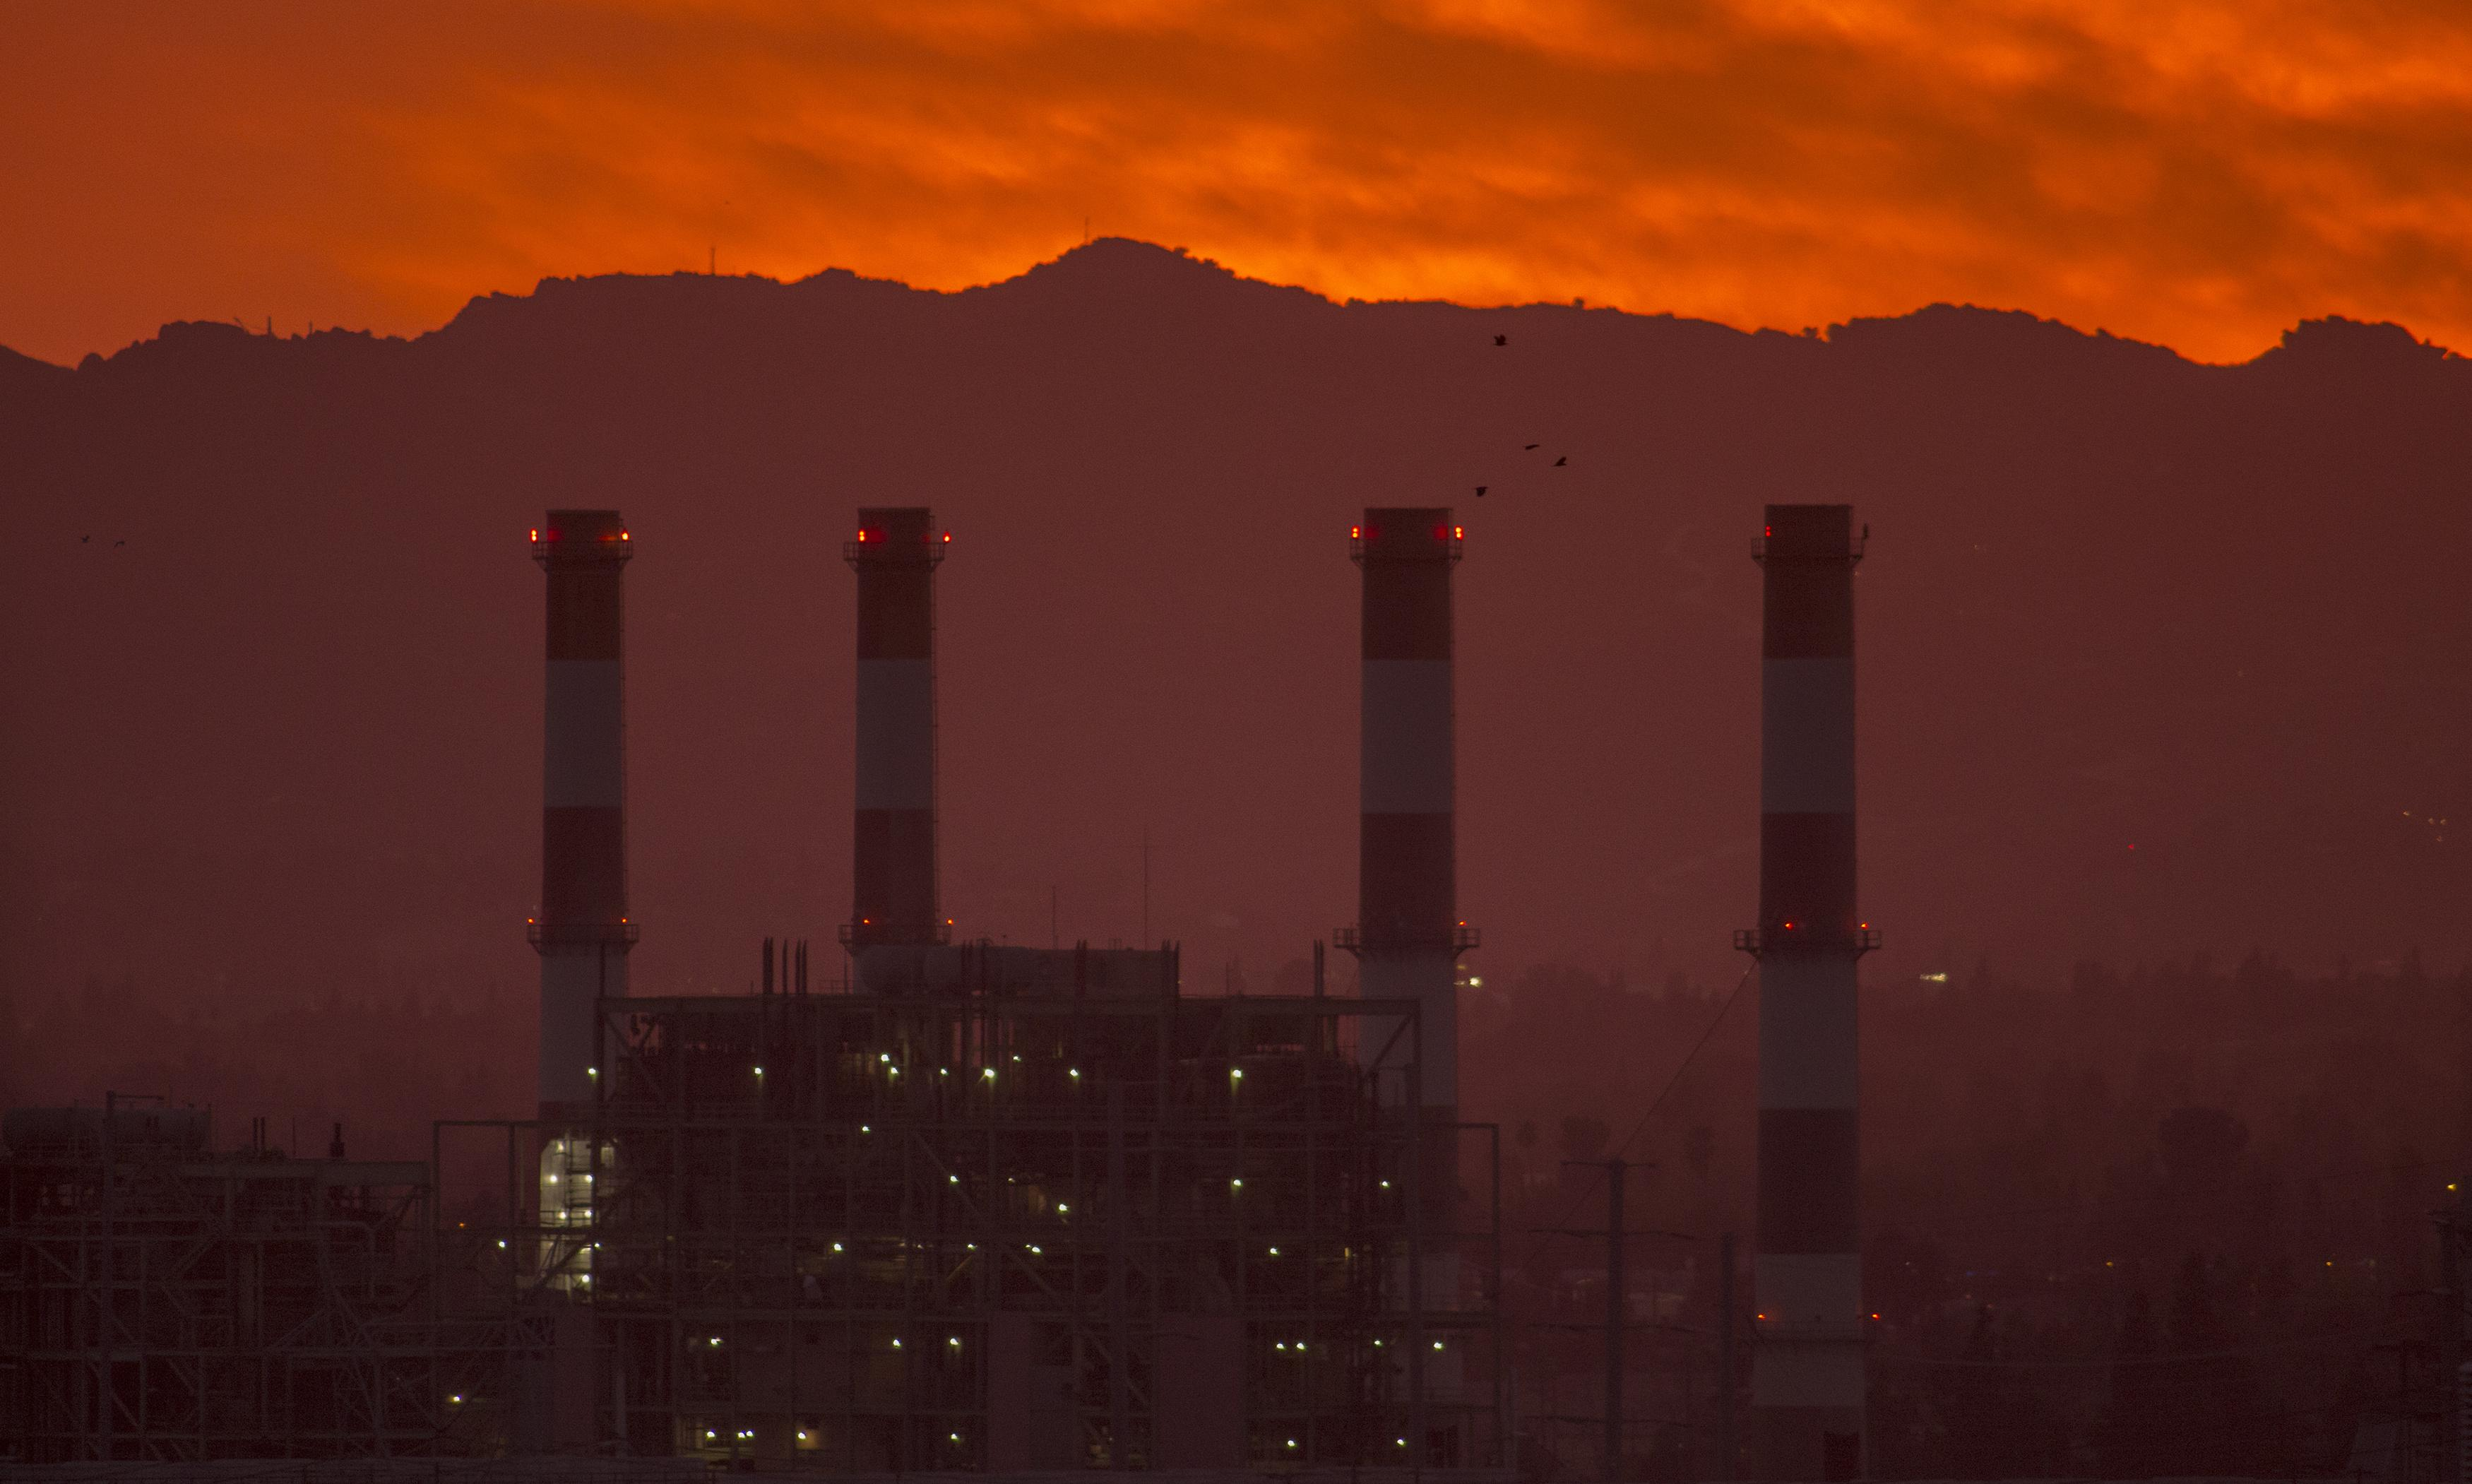 My rich town was poisoned by a corporation. Even the 1% isn't safe from pollution